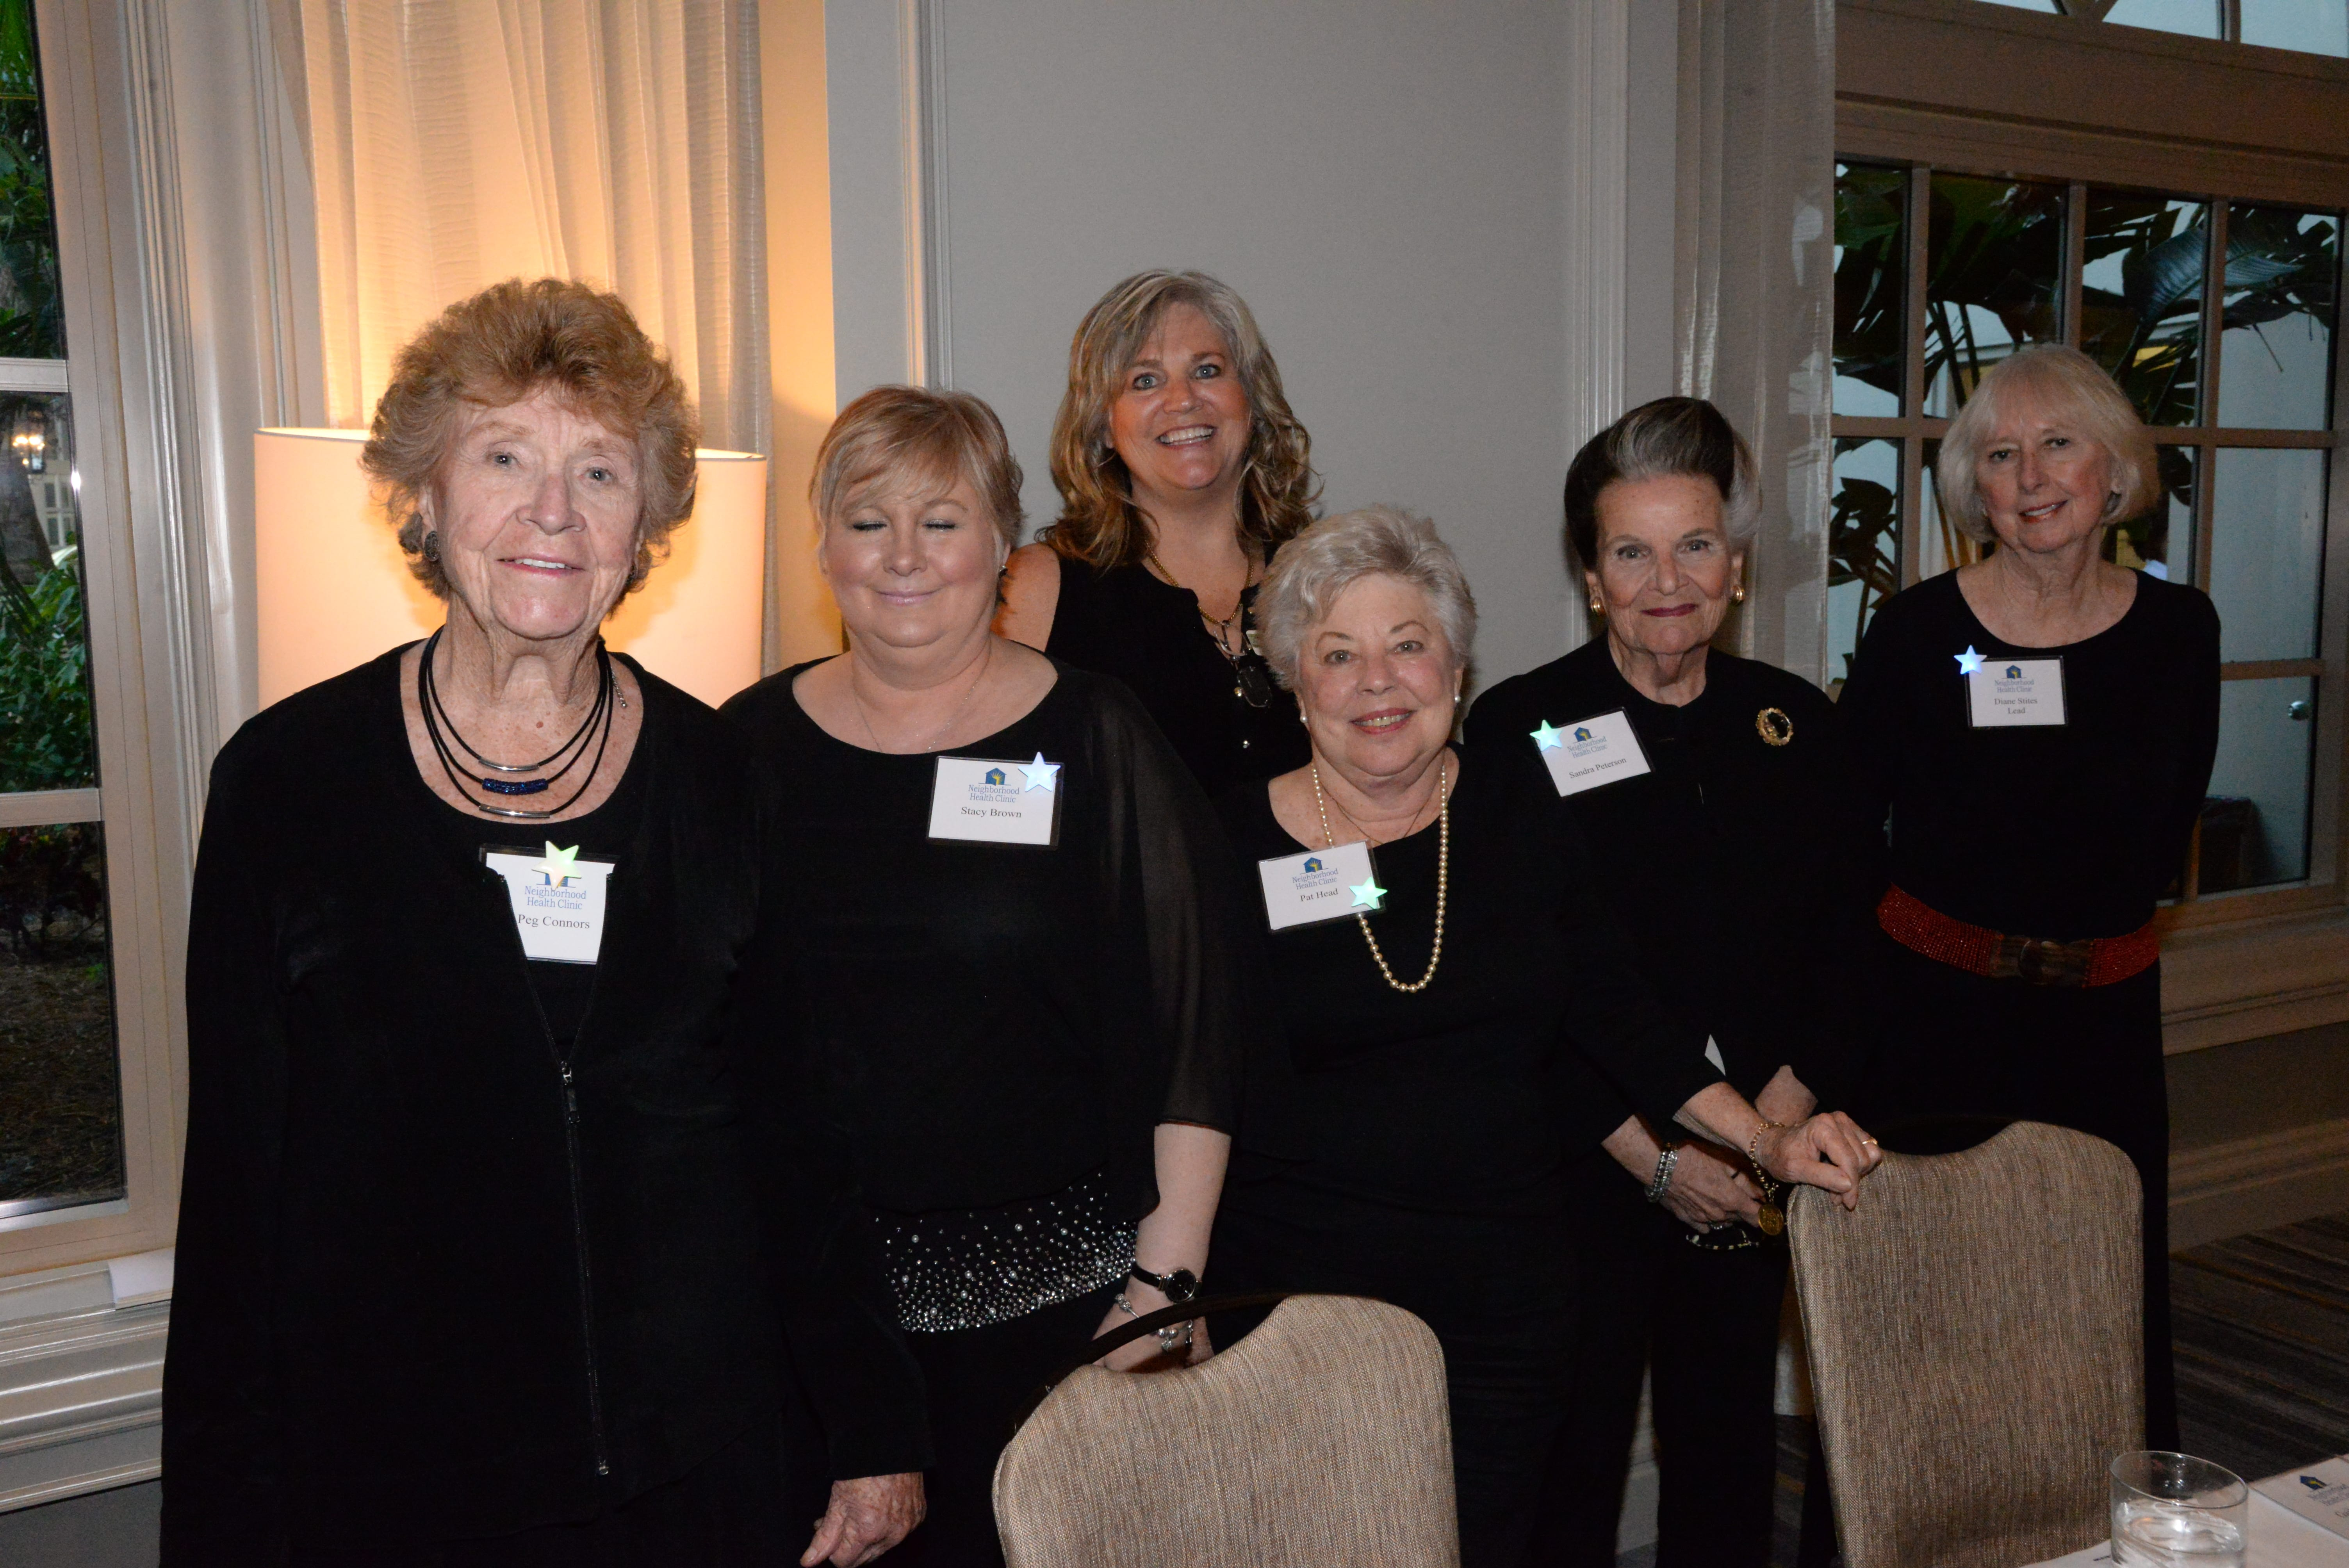 Peg Connors, Stacy Brown, Ann Crews, Pat Head, Sandra Peterson, Diane Stites